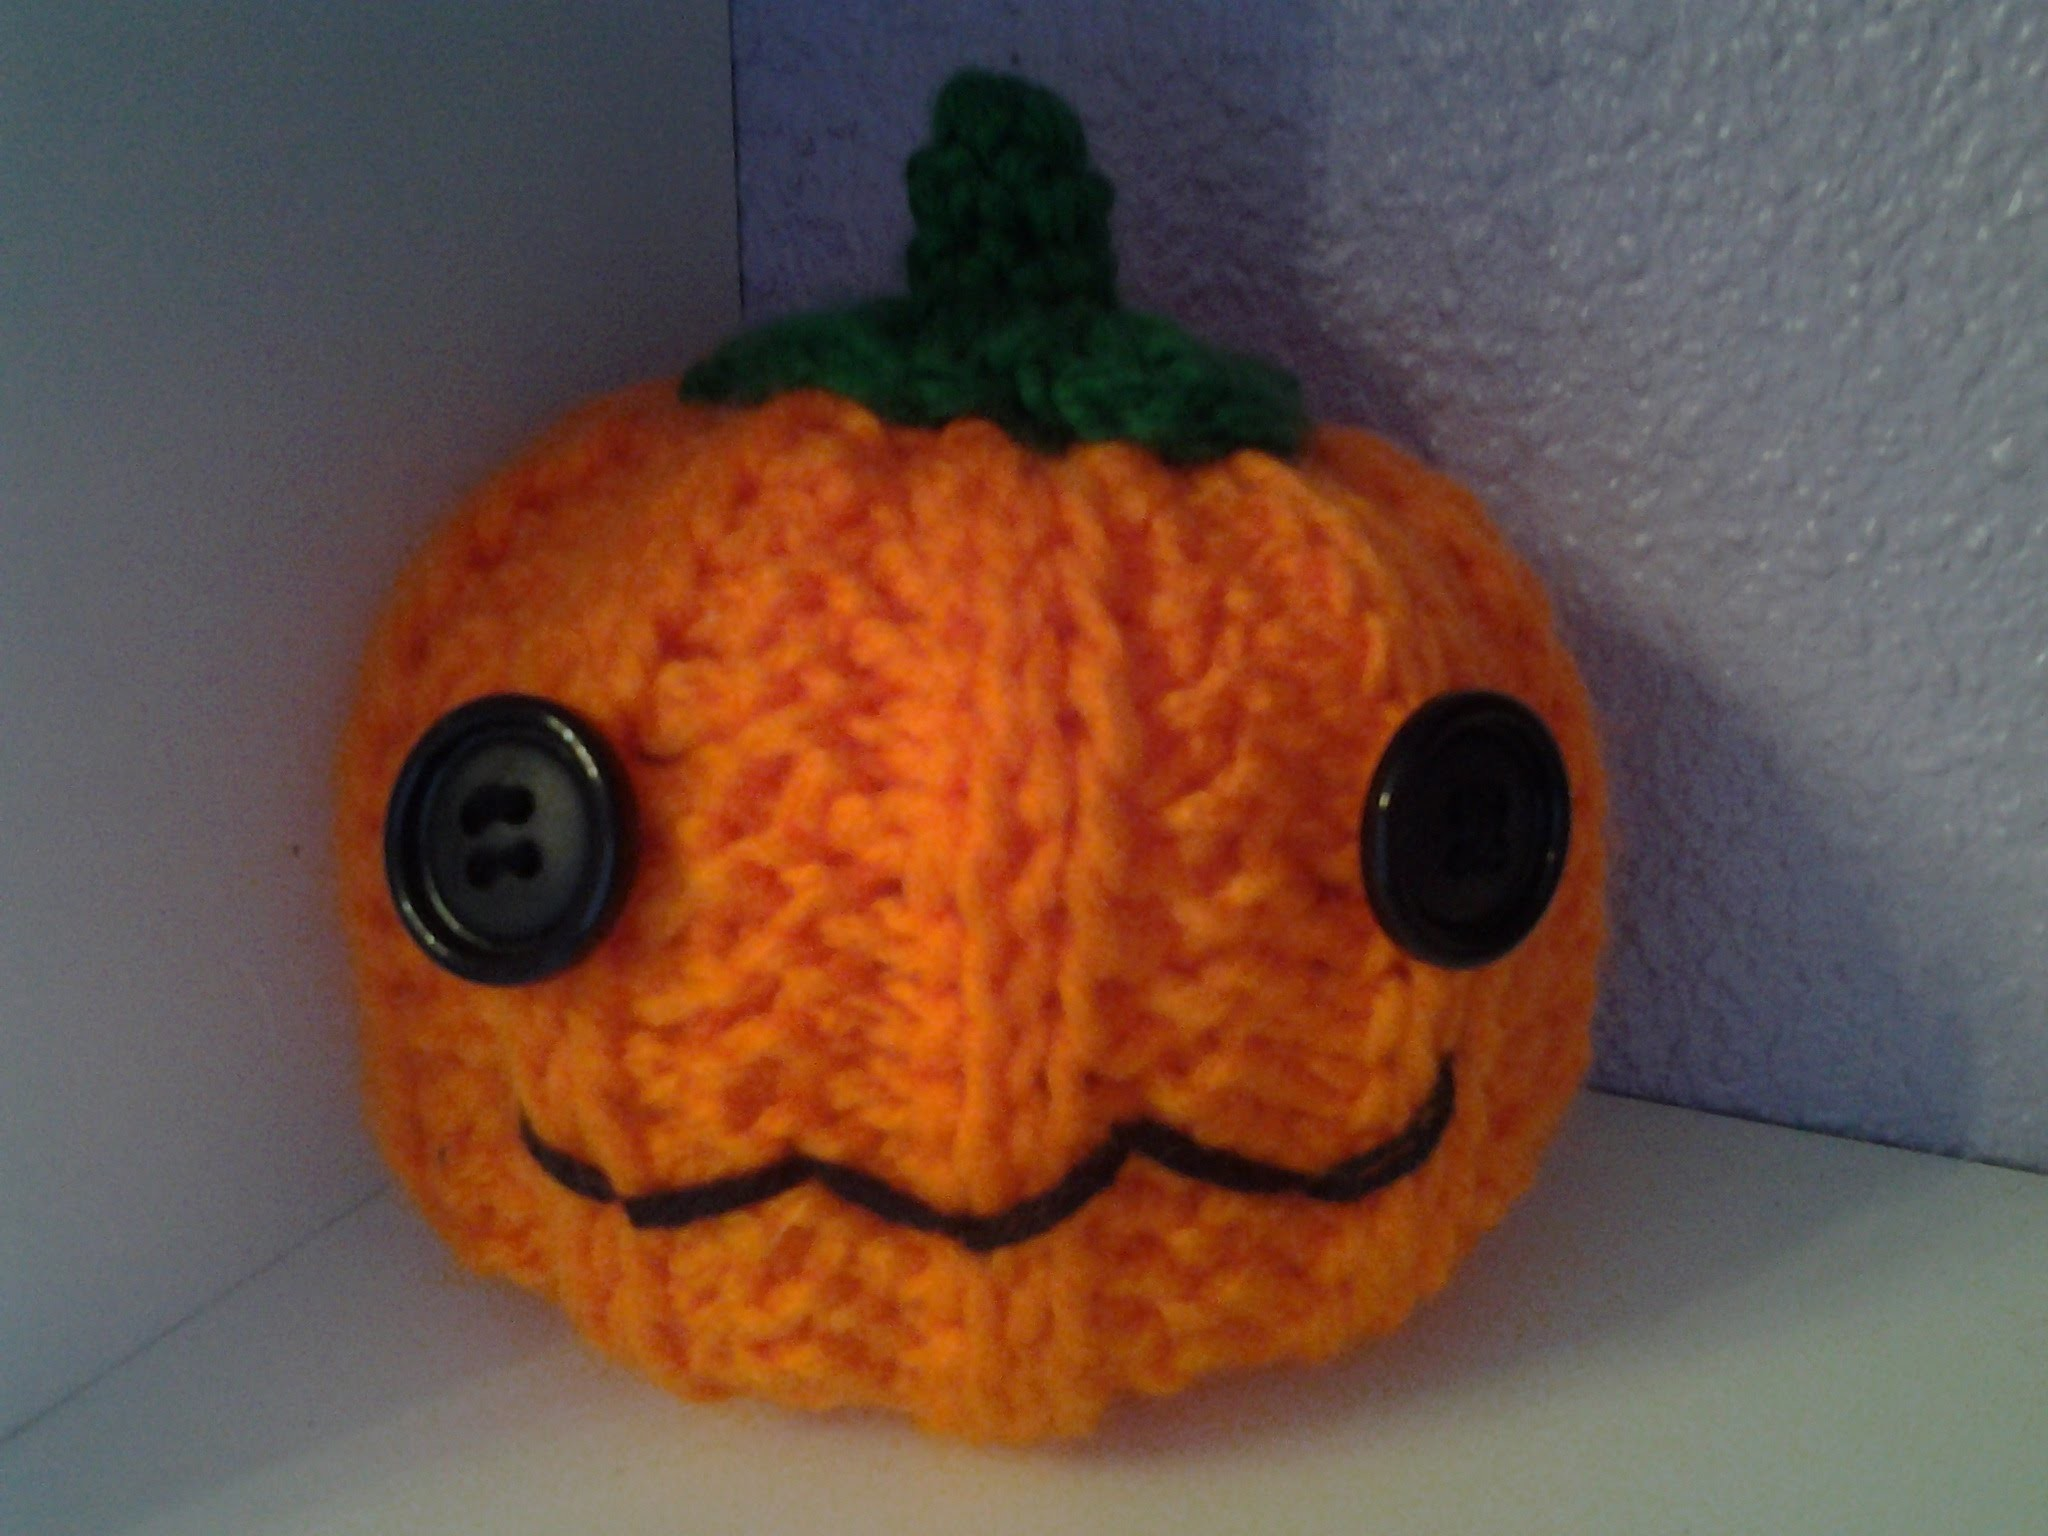 Calabaza hallowen boo! crochet (ganchillo) tunecino #tutorial DIY